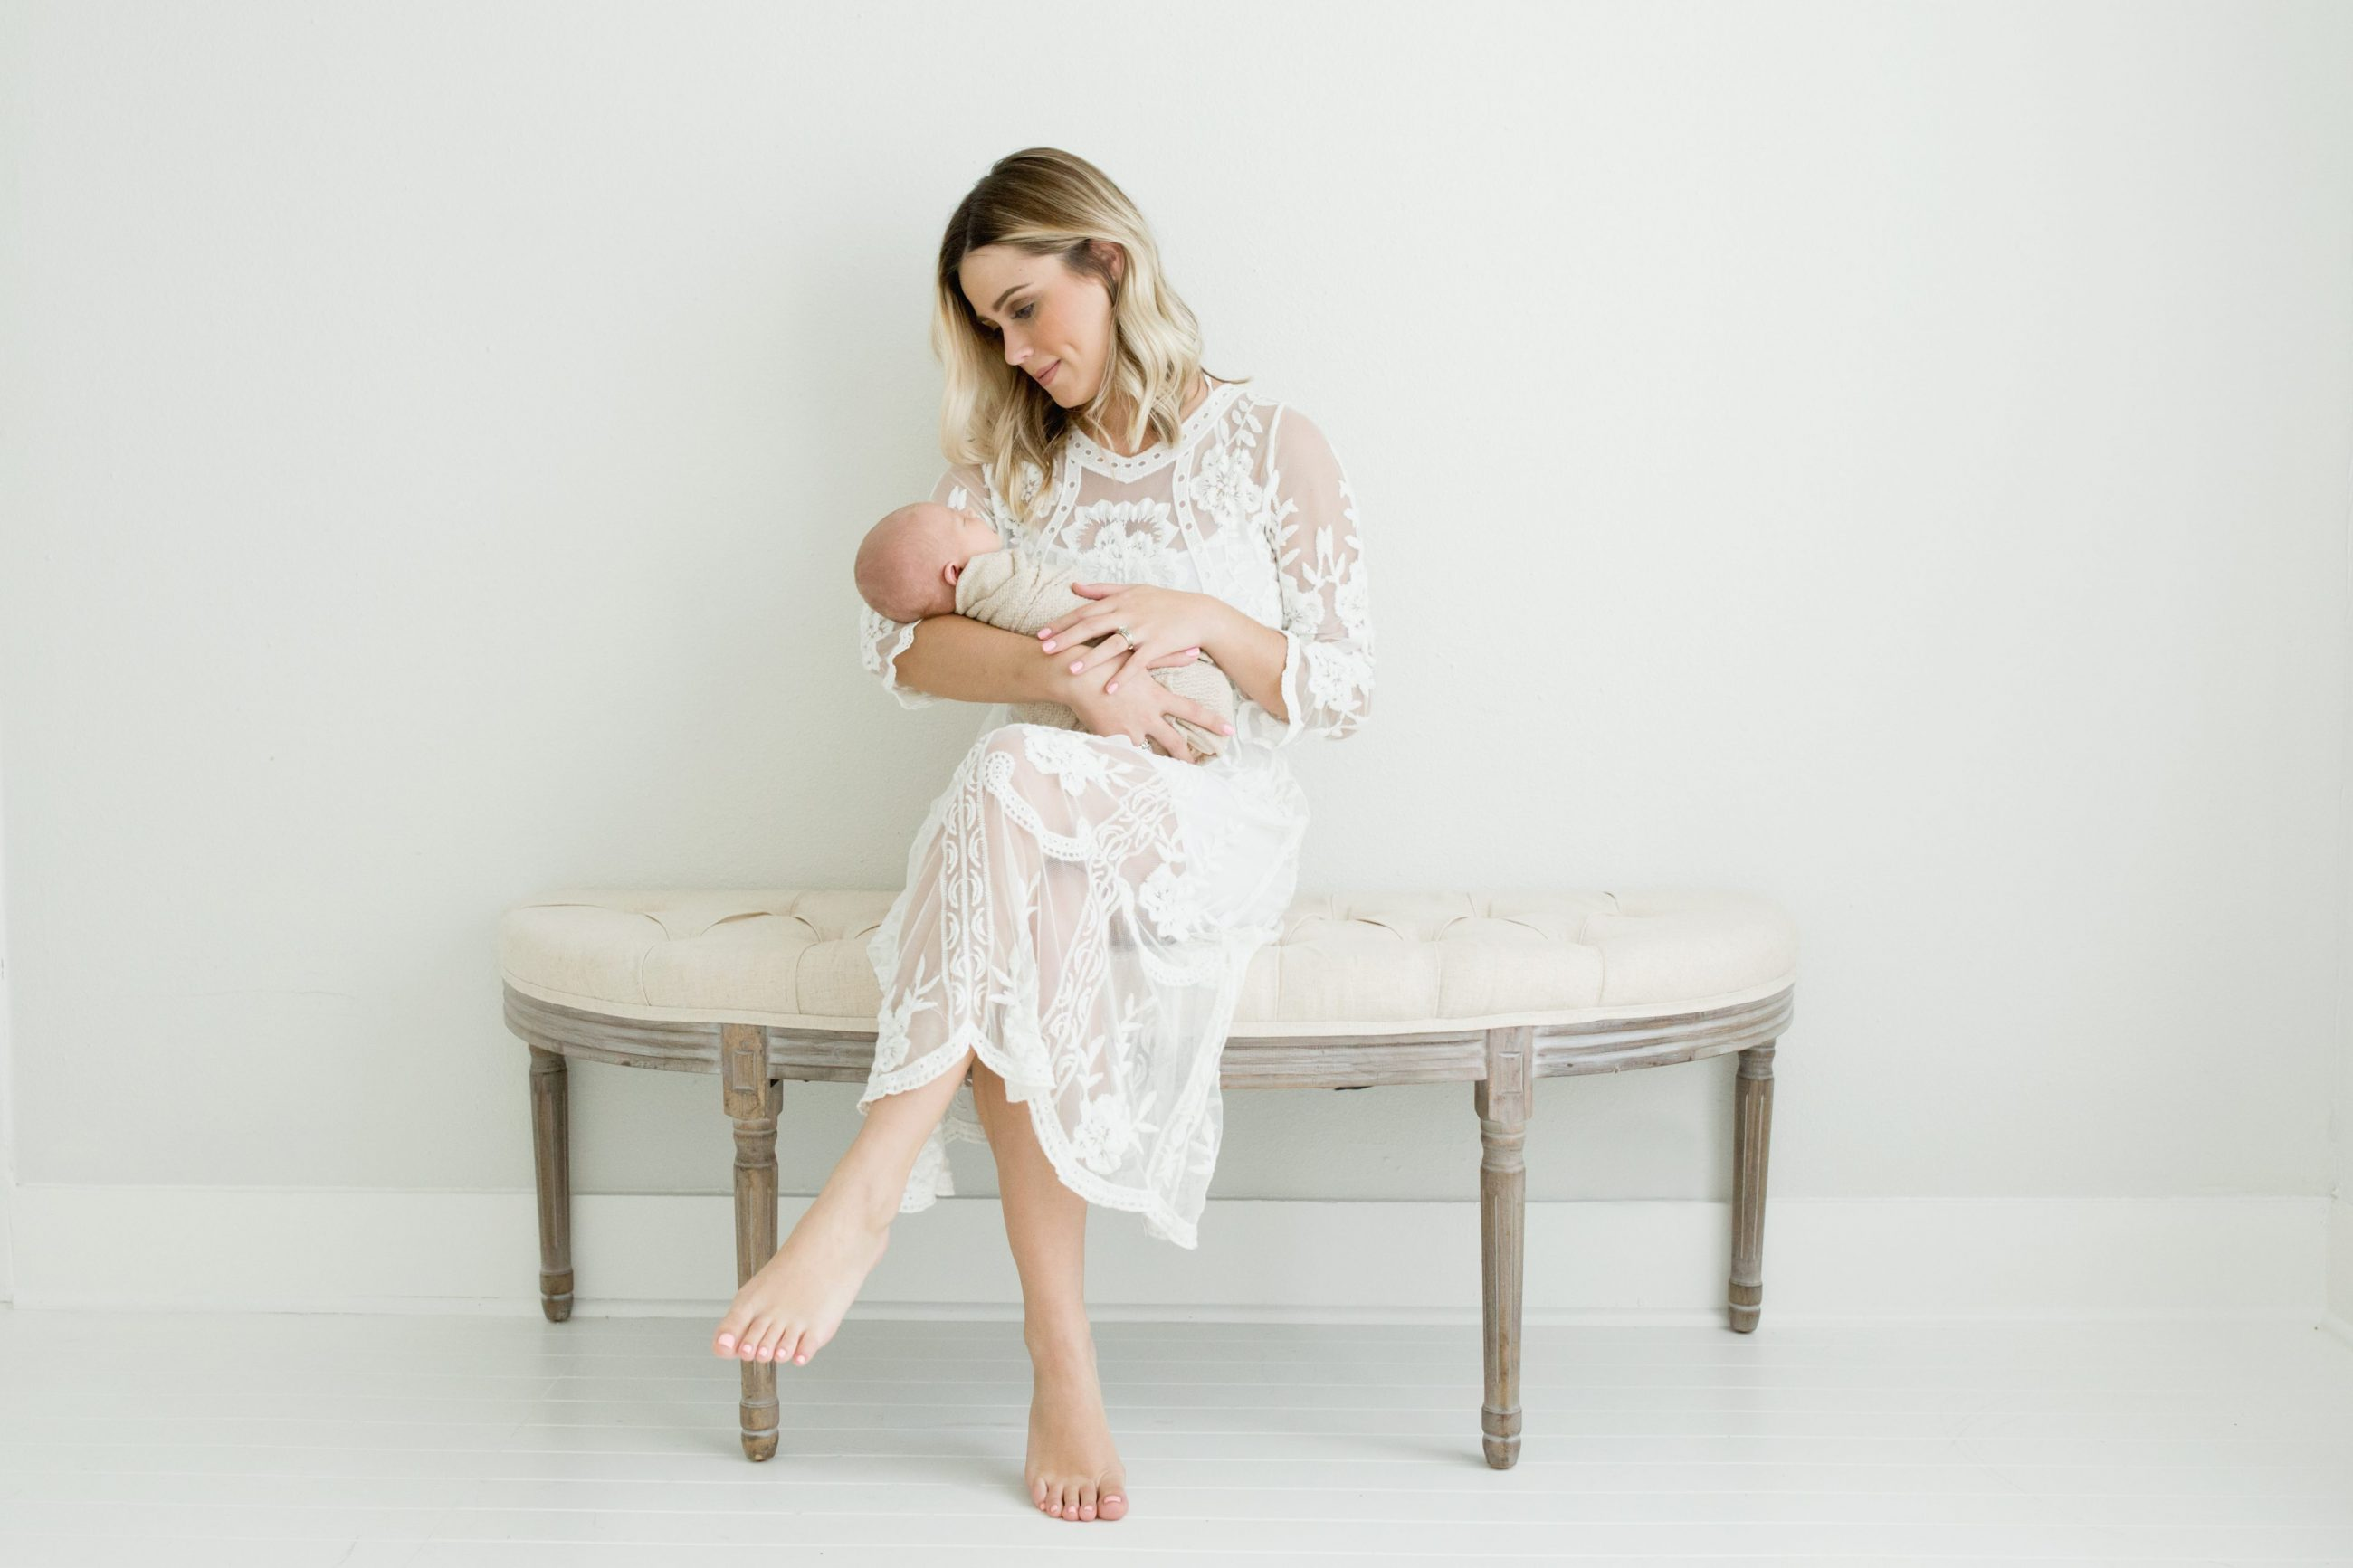 Newborn Photo Session Pictures | Family Pictures ideas | Newborn Photo Ideas | Uptown with Elly Brown